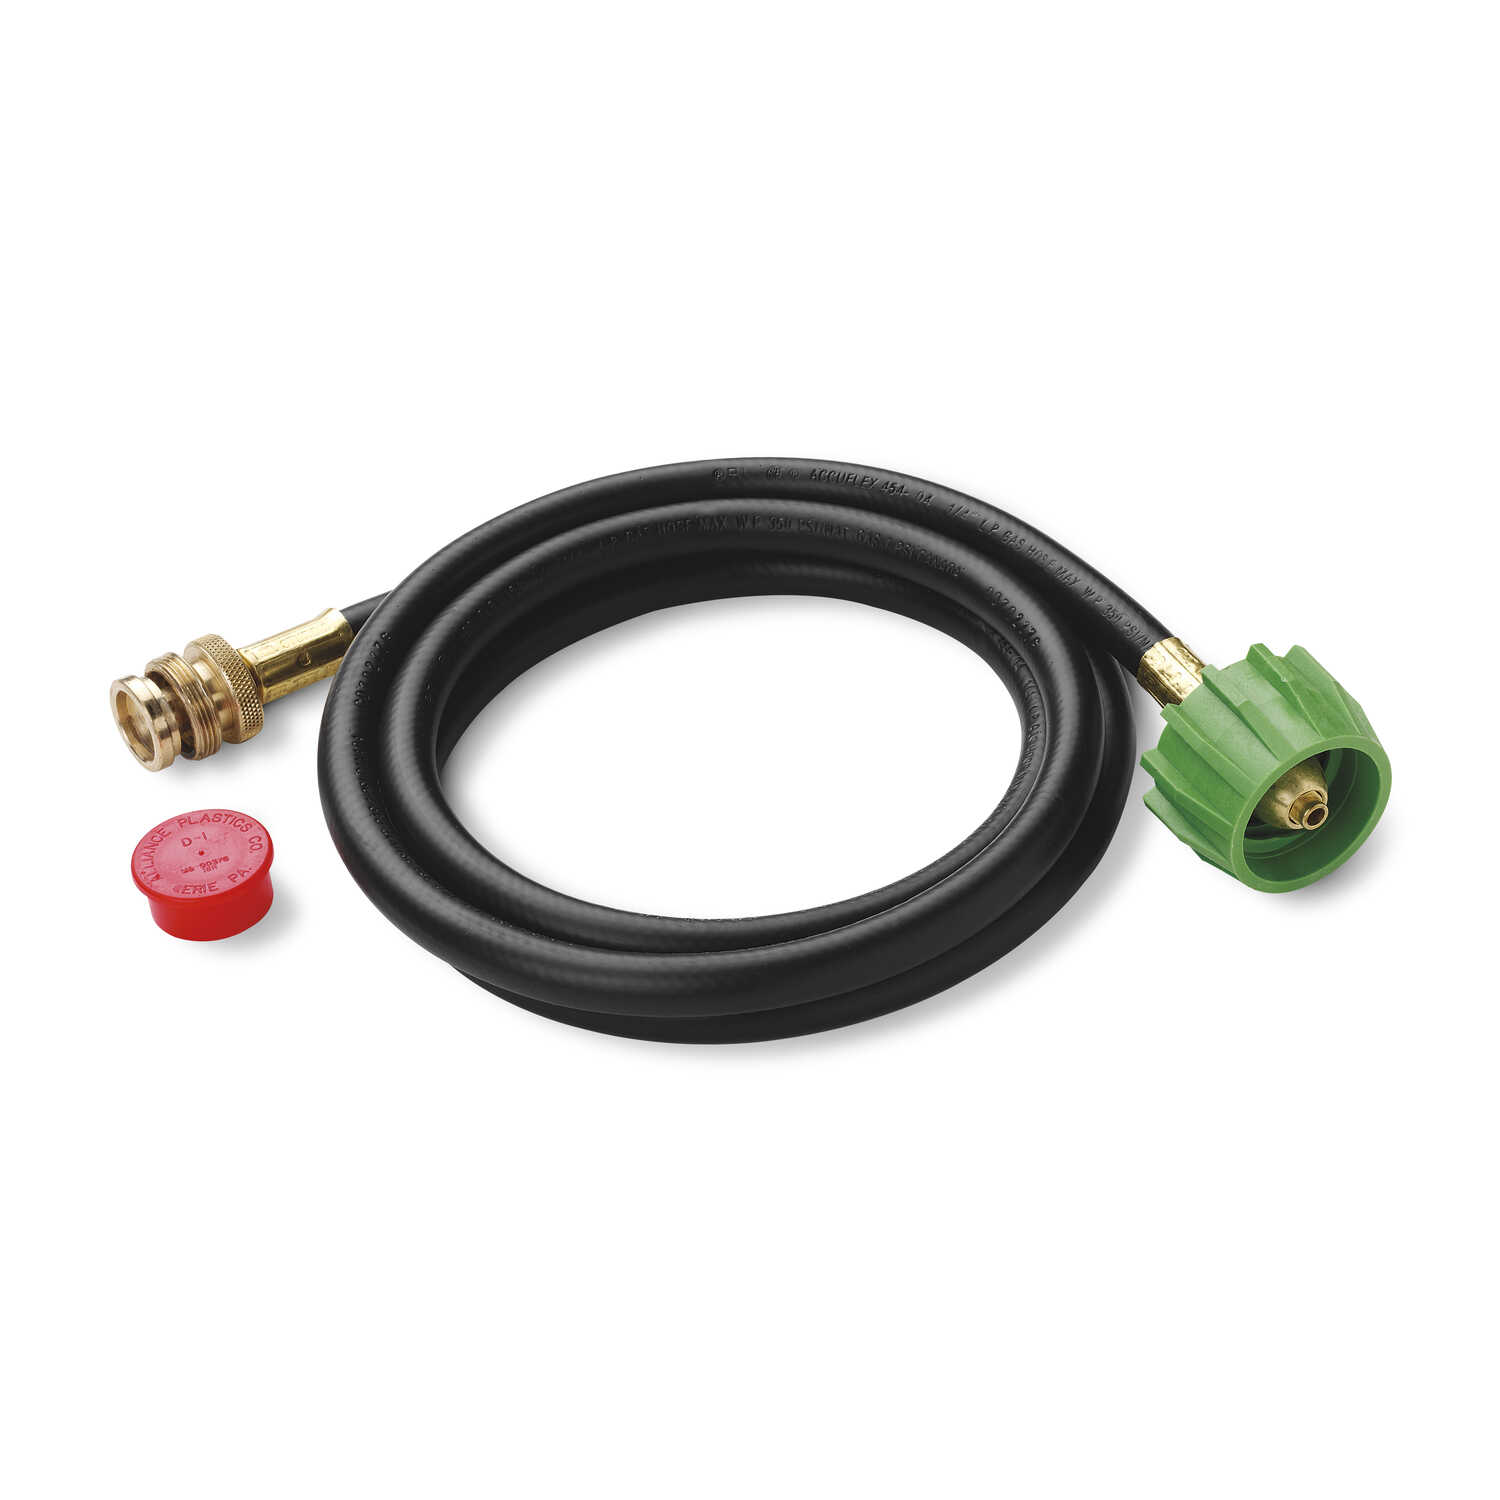 Weber  Stainless Steel/Rubber/Brass  Gas Line Hose and Adapter  0.5 in. H x 1.5 in. W x 72 in. L